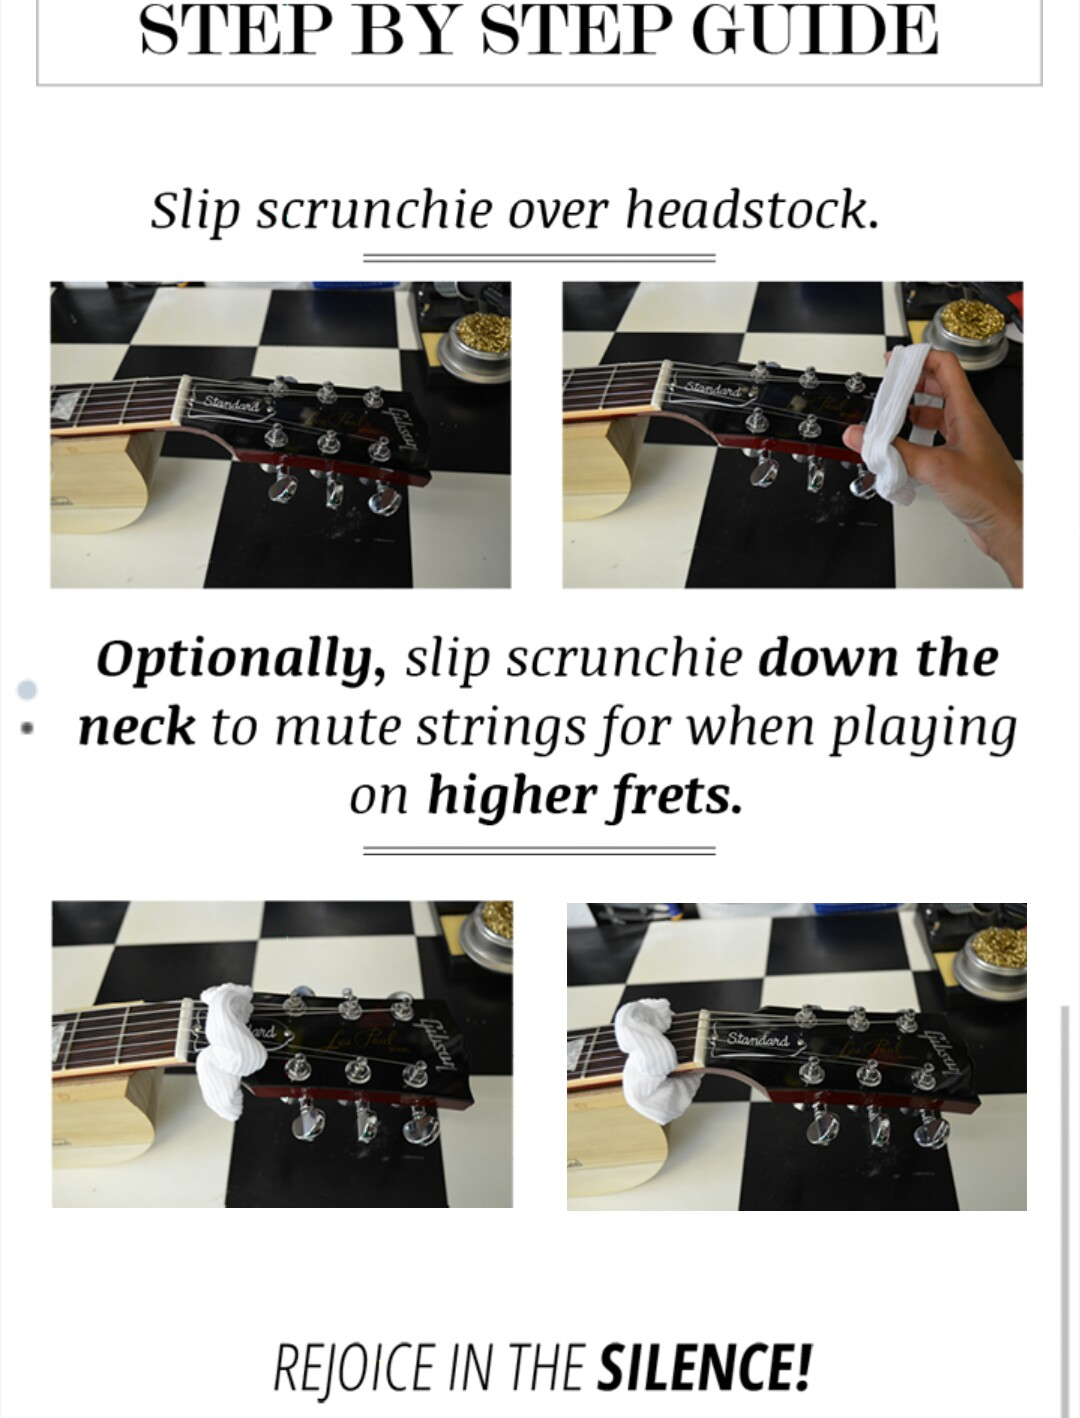 How to do it slip the scrunchie over the headstock and position it behind the nut rejoice in the silence